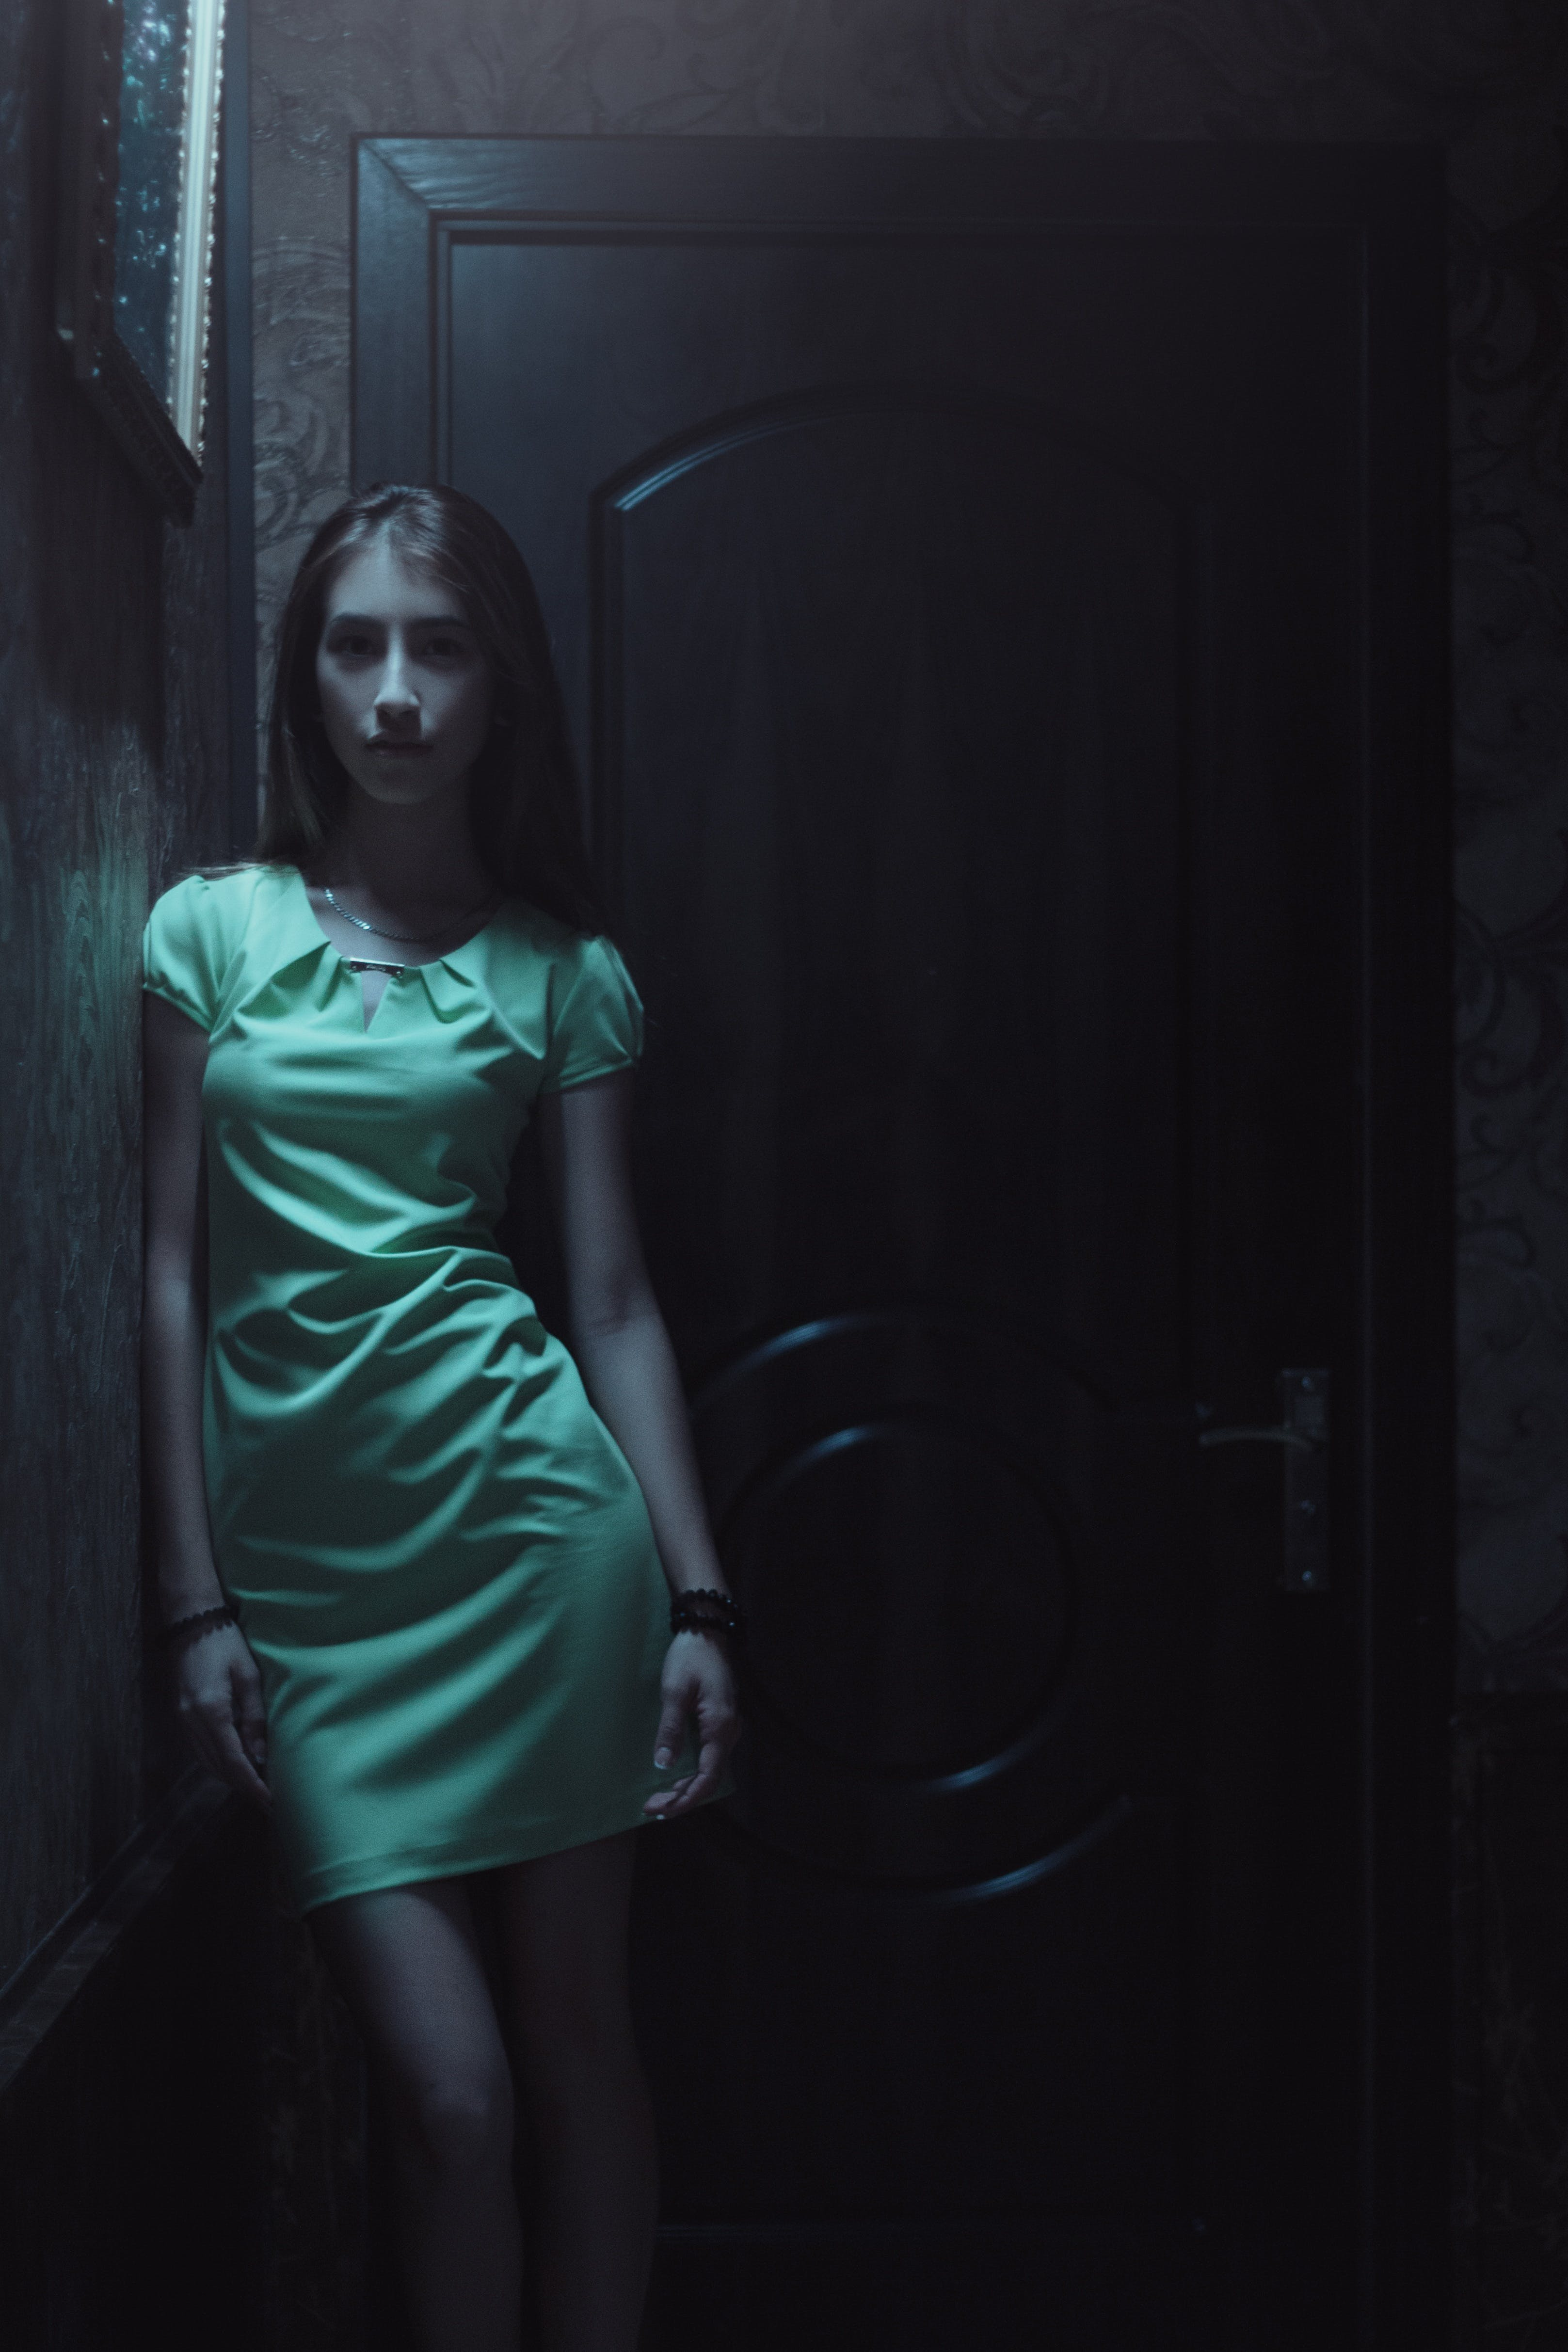 Woman in Green Dress Standing Near Door